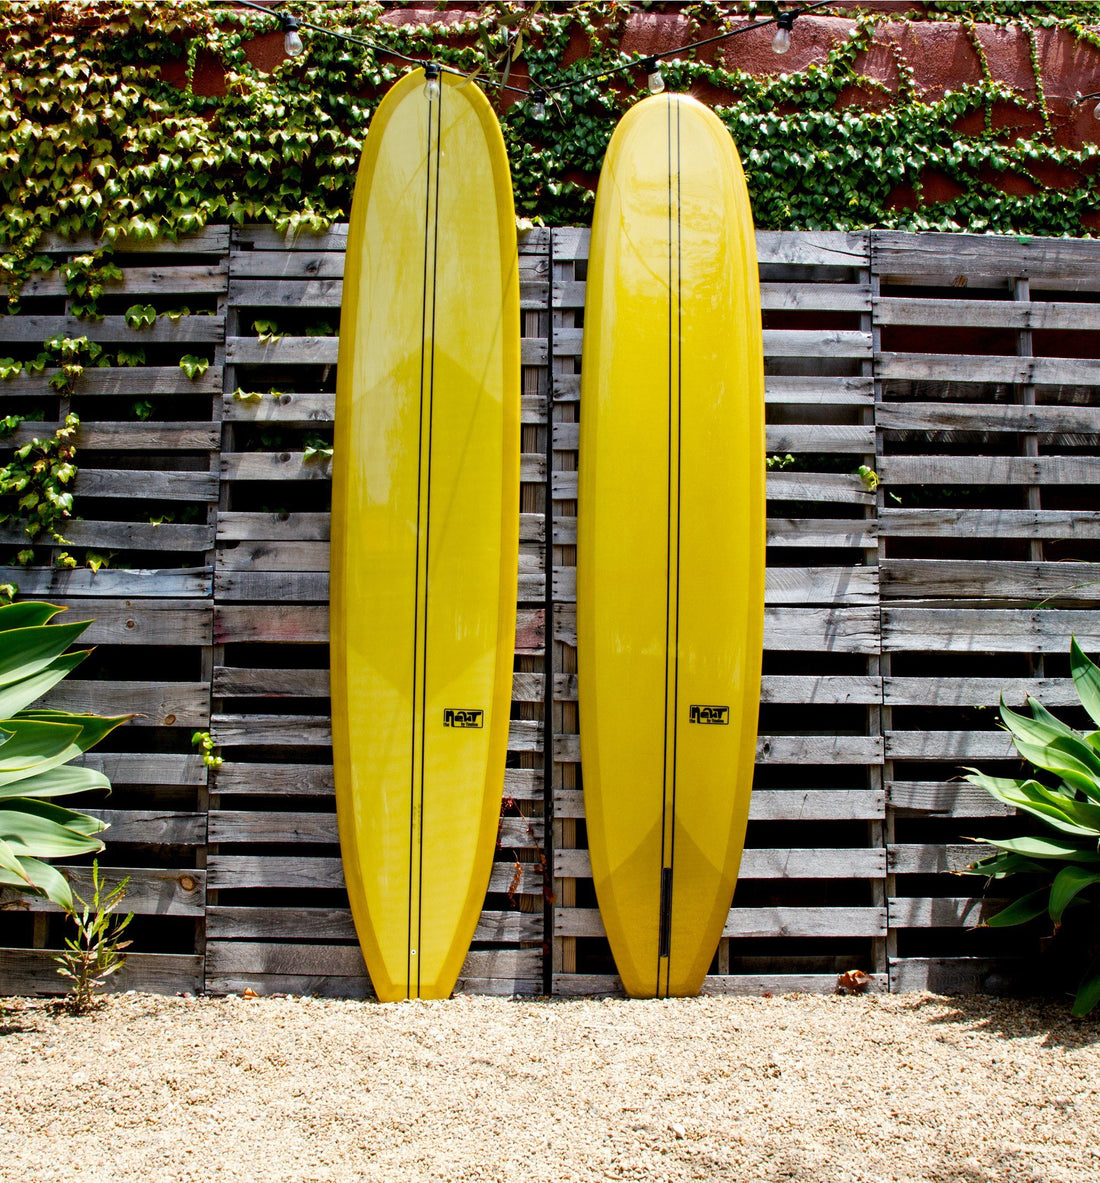 Fineline Surfboards Newt, Avocado 9'6 - Surf - Iron and Resin